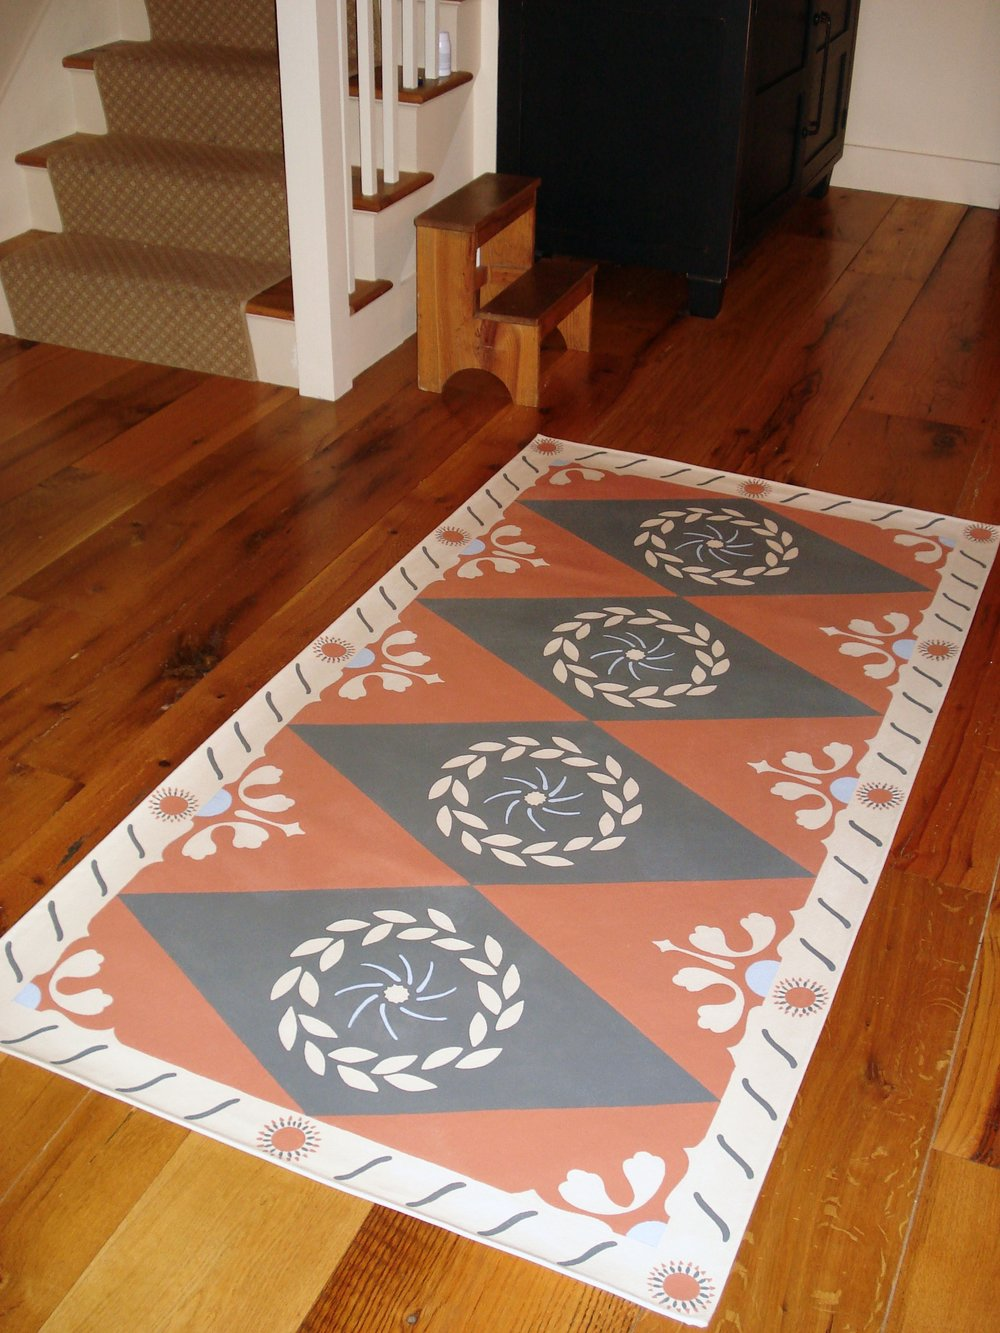 historical_4_fullsize.jpg smaller floorcloth.jpg